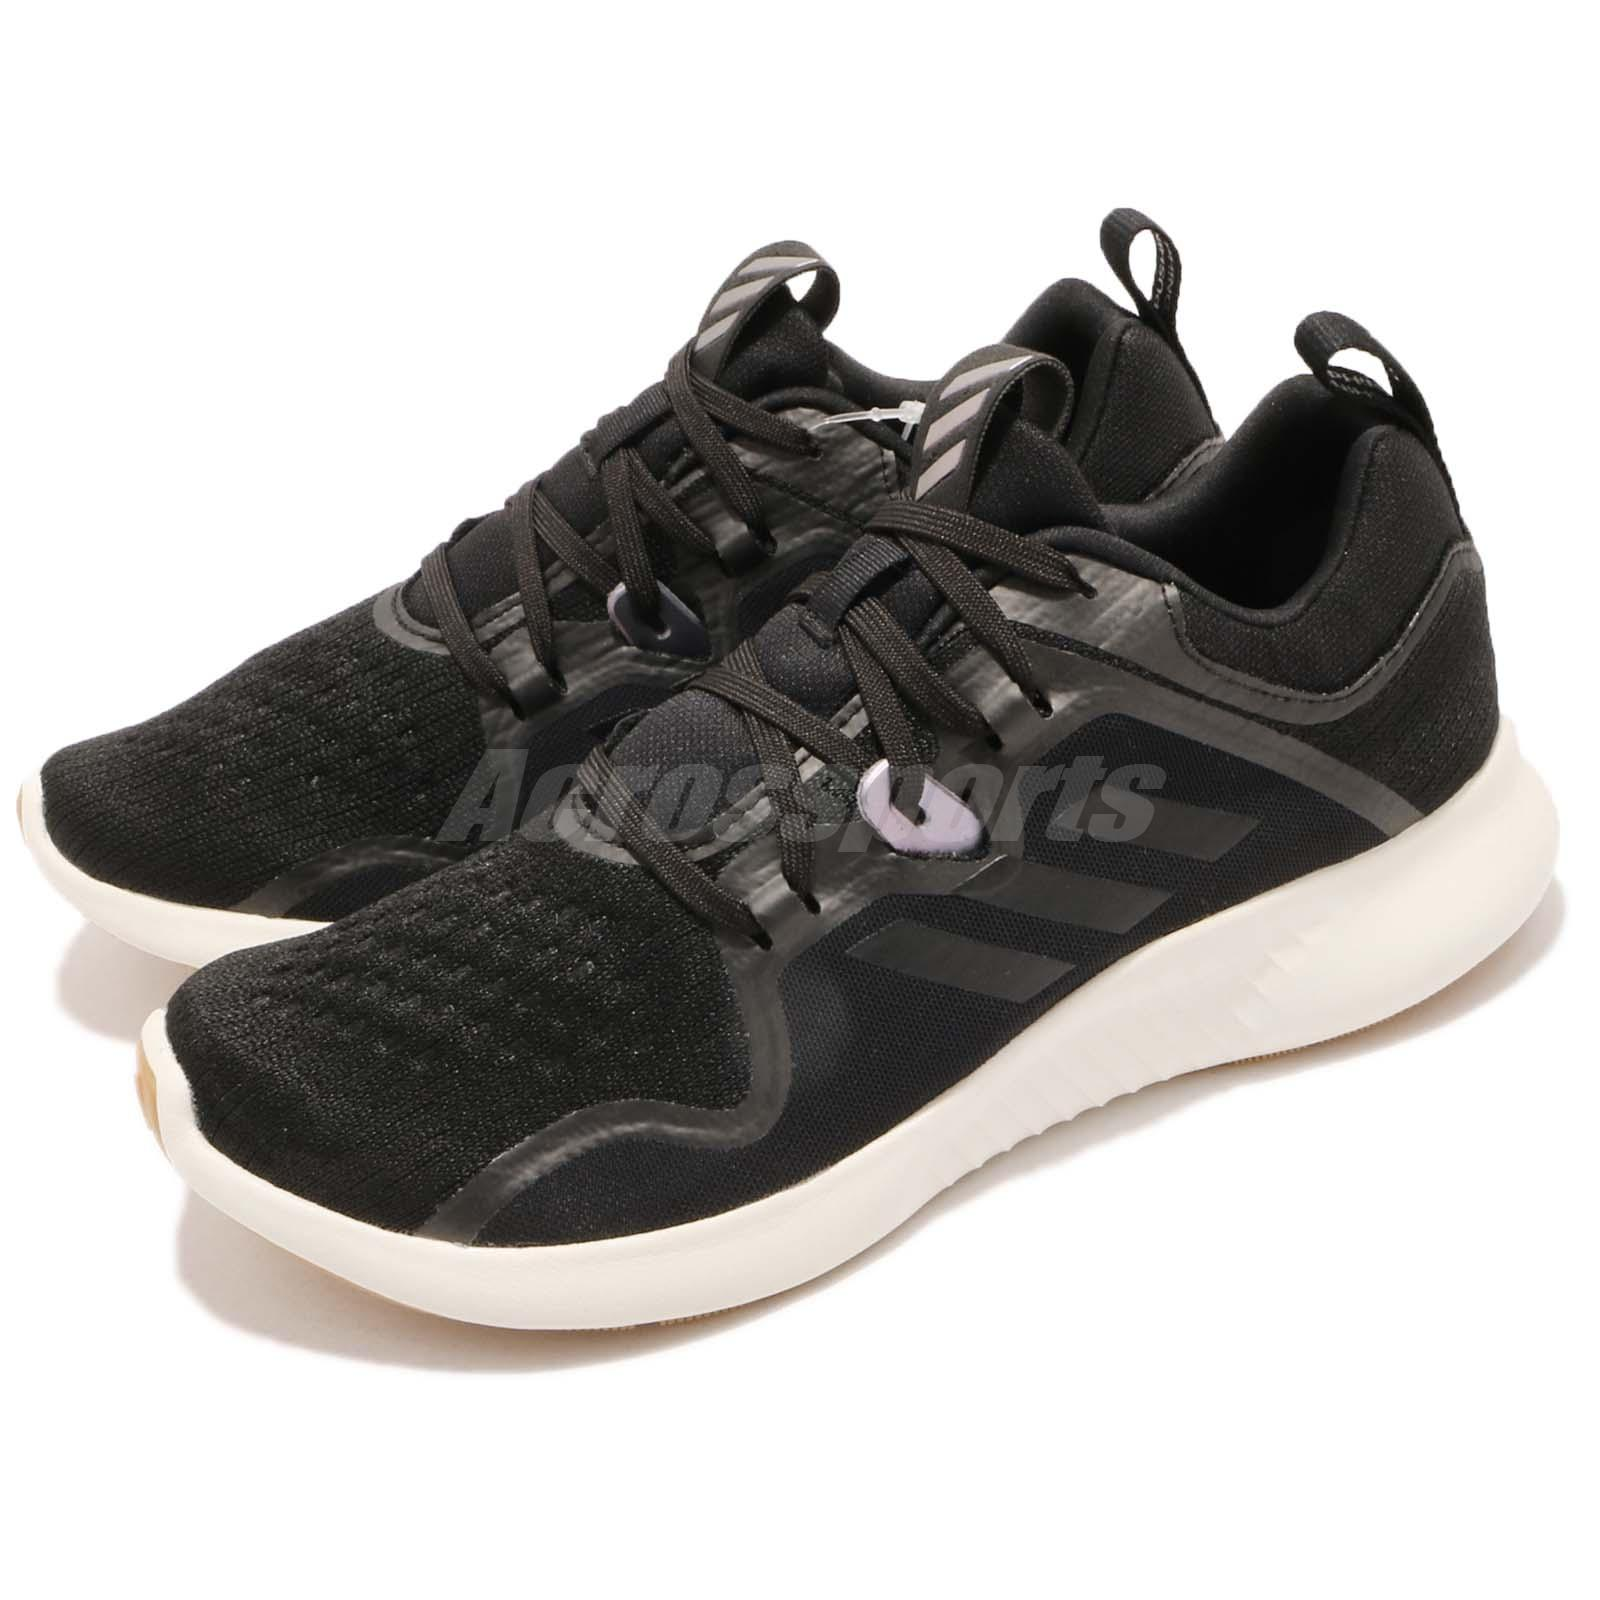 90f497c0f Details about adidas EdgeBOUNCE W Black White Gum BOUNCE Cushion Womens Running  Shoes BB7566